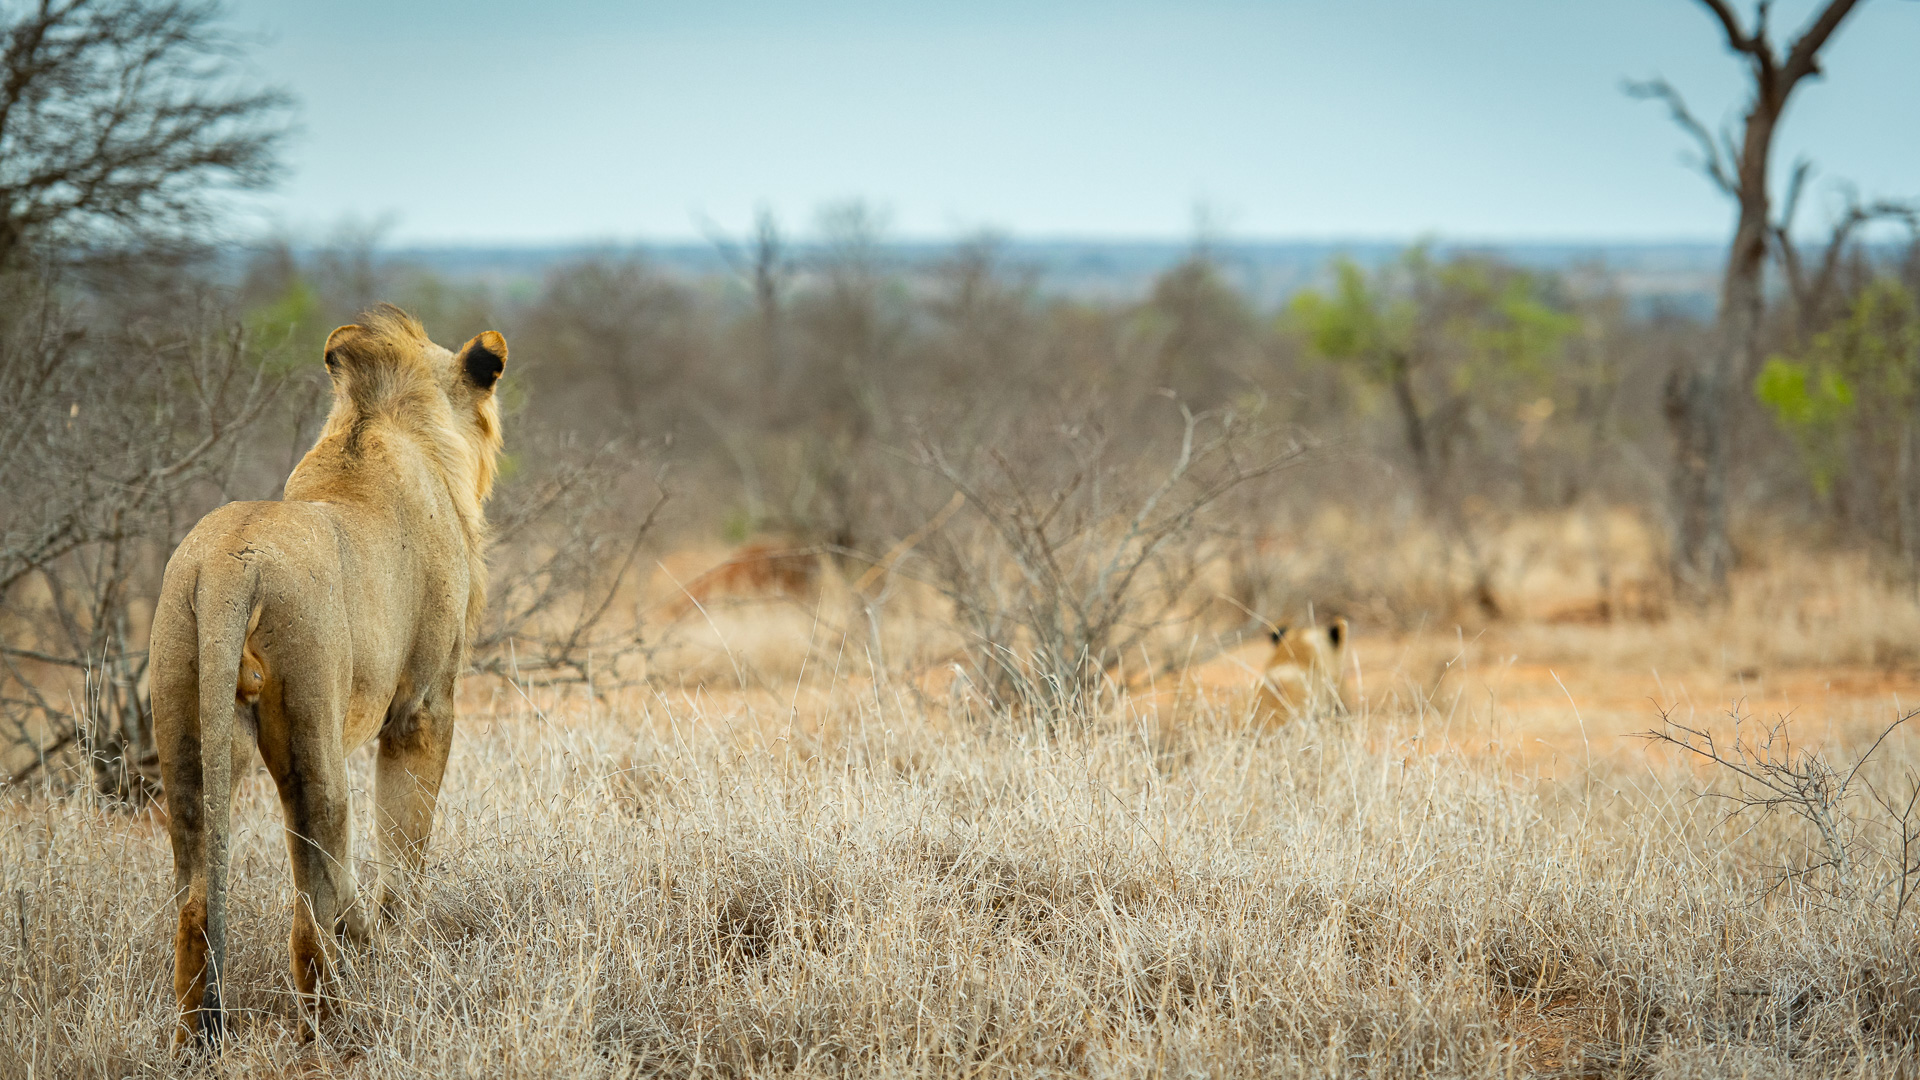 Tanda Tula - lion in the Timbavati, South Africa